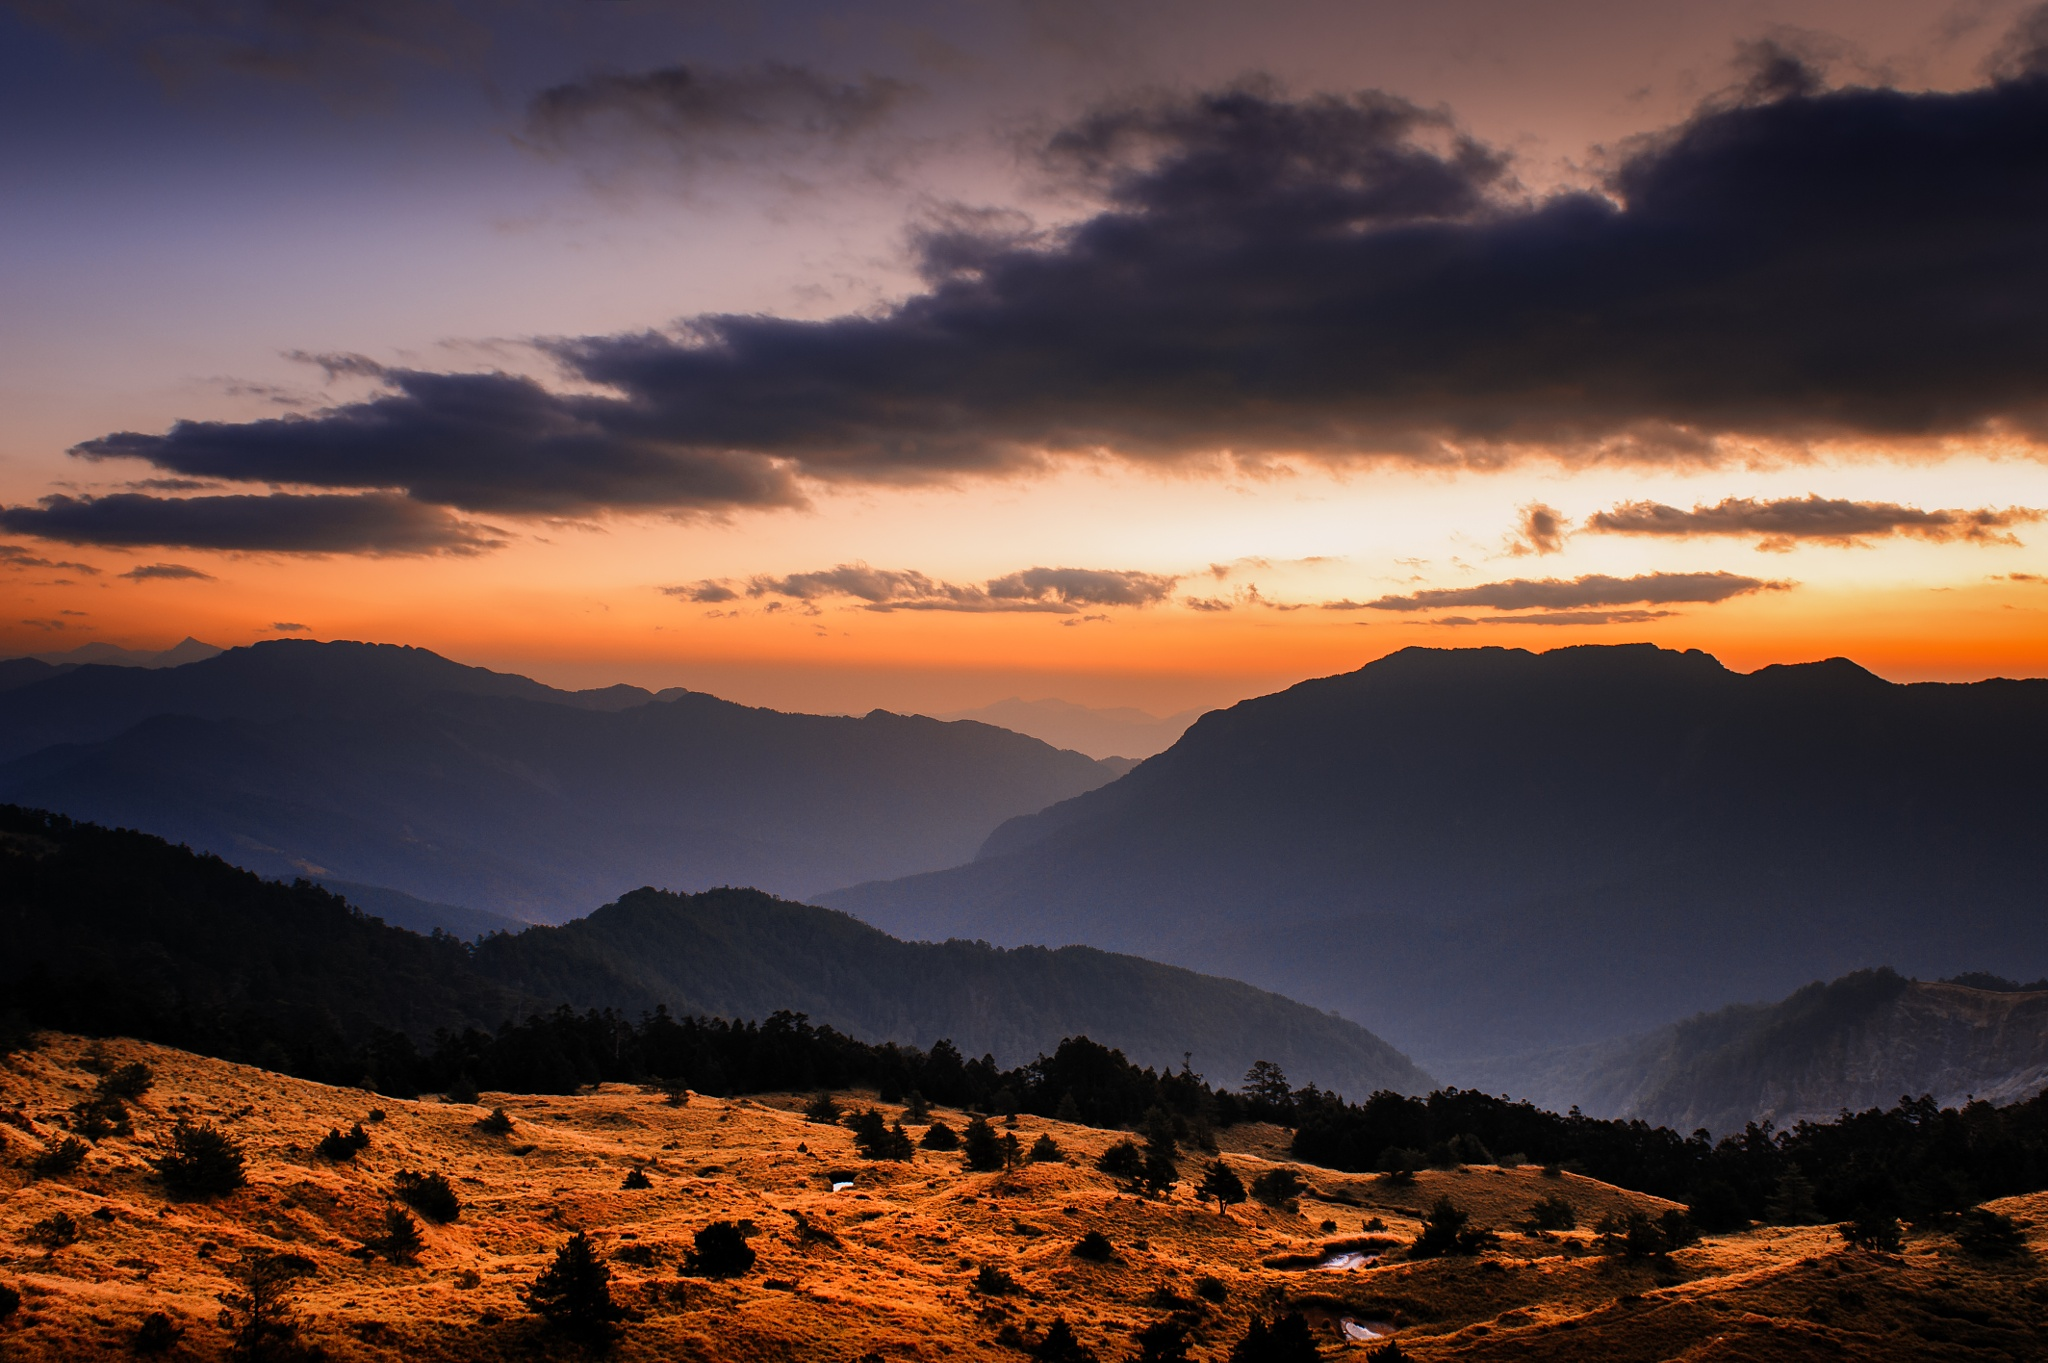 Sunset at the QingJing Farm by pslee